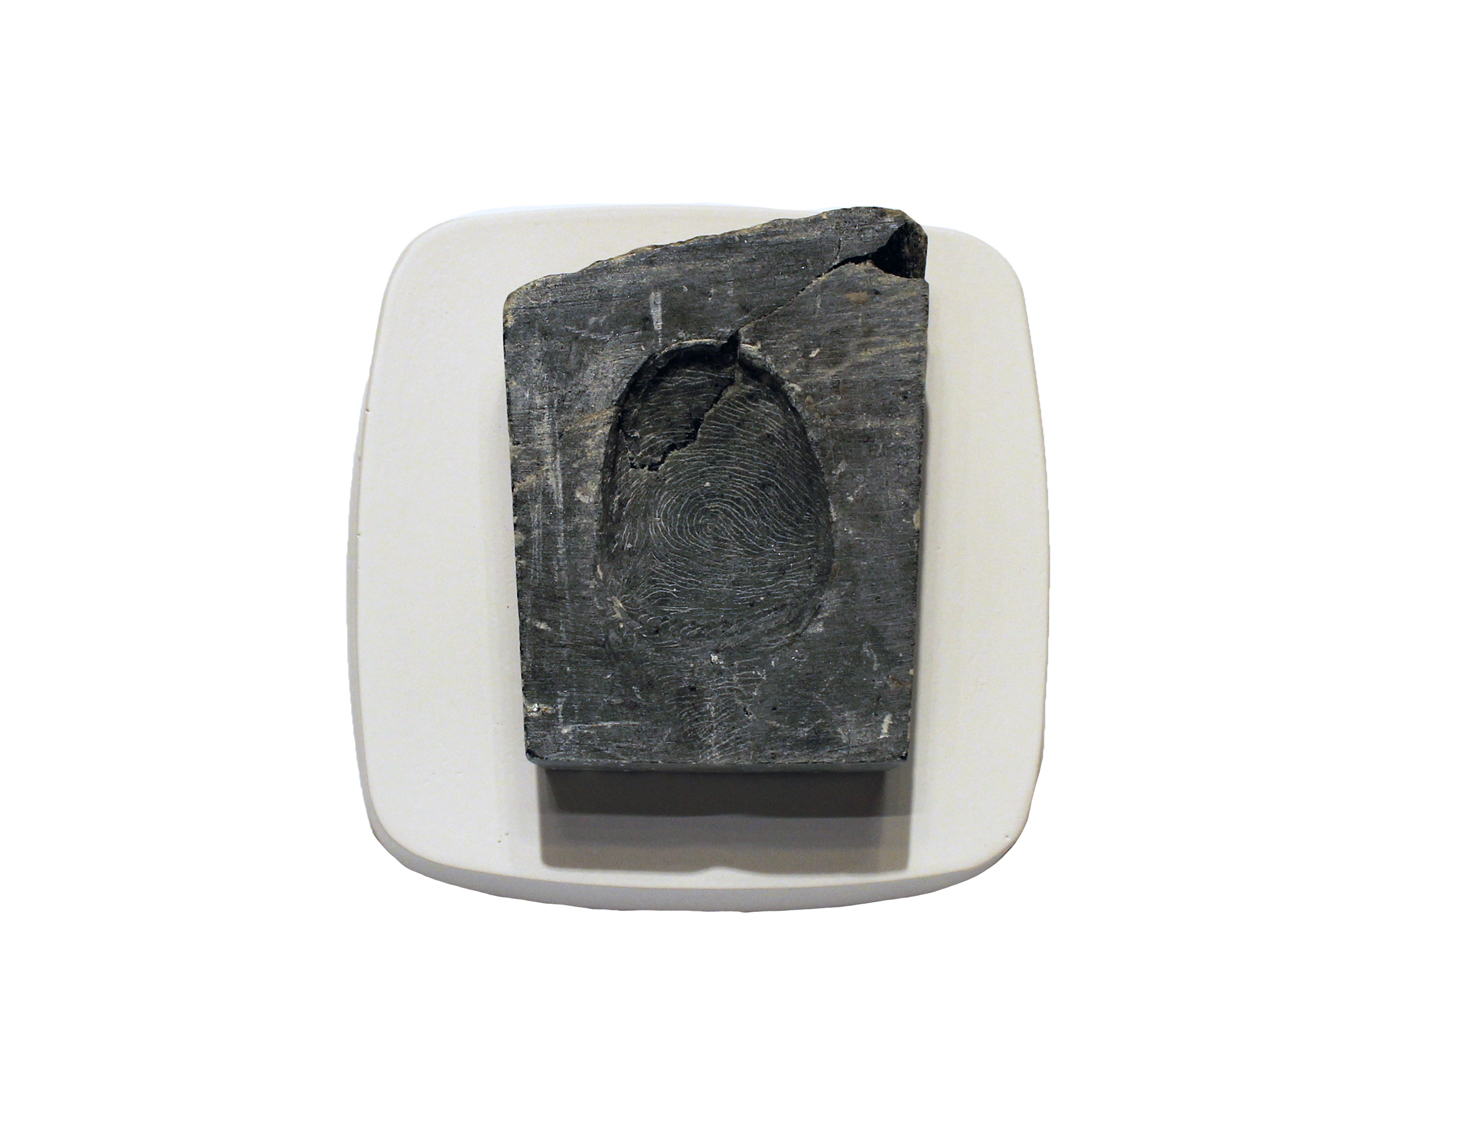 TheHandoftheArtistNegativeThumbimpressionmoquette_2014_soapstone_7.5x10x2.5_3x4x1_Available